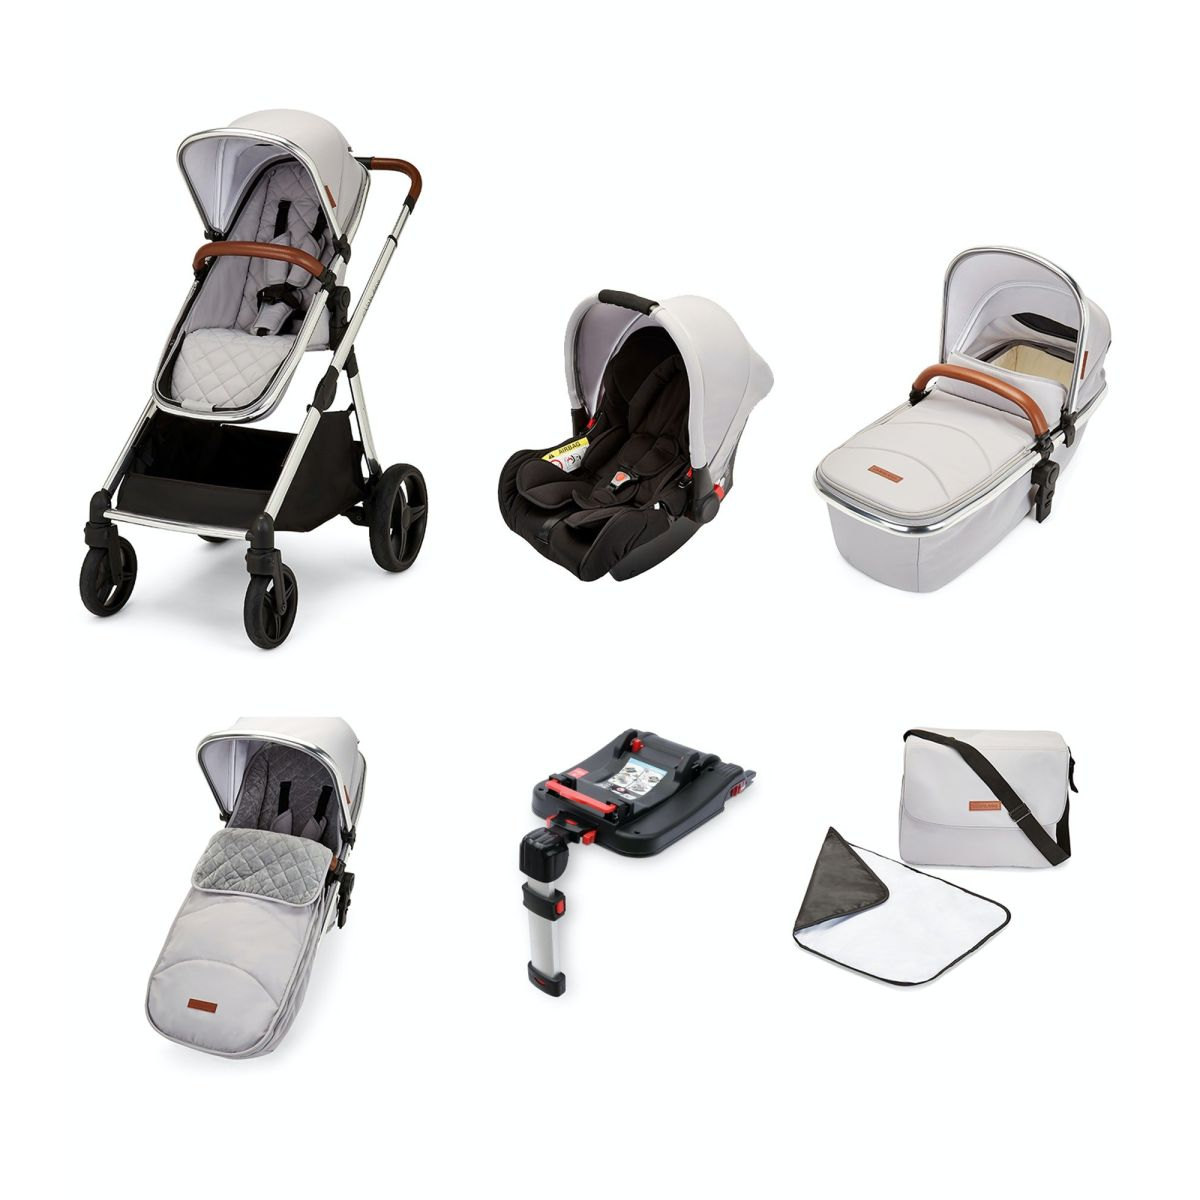 Eclipse Travel System with Galaxy Car Seat and Isofix Base (silver grey)